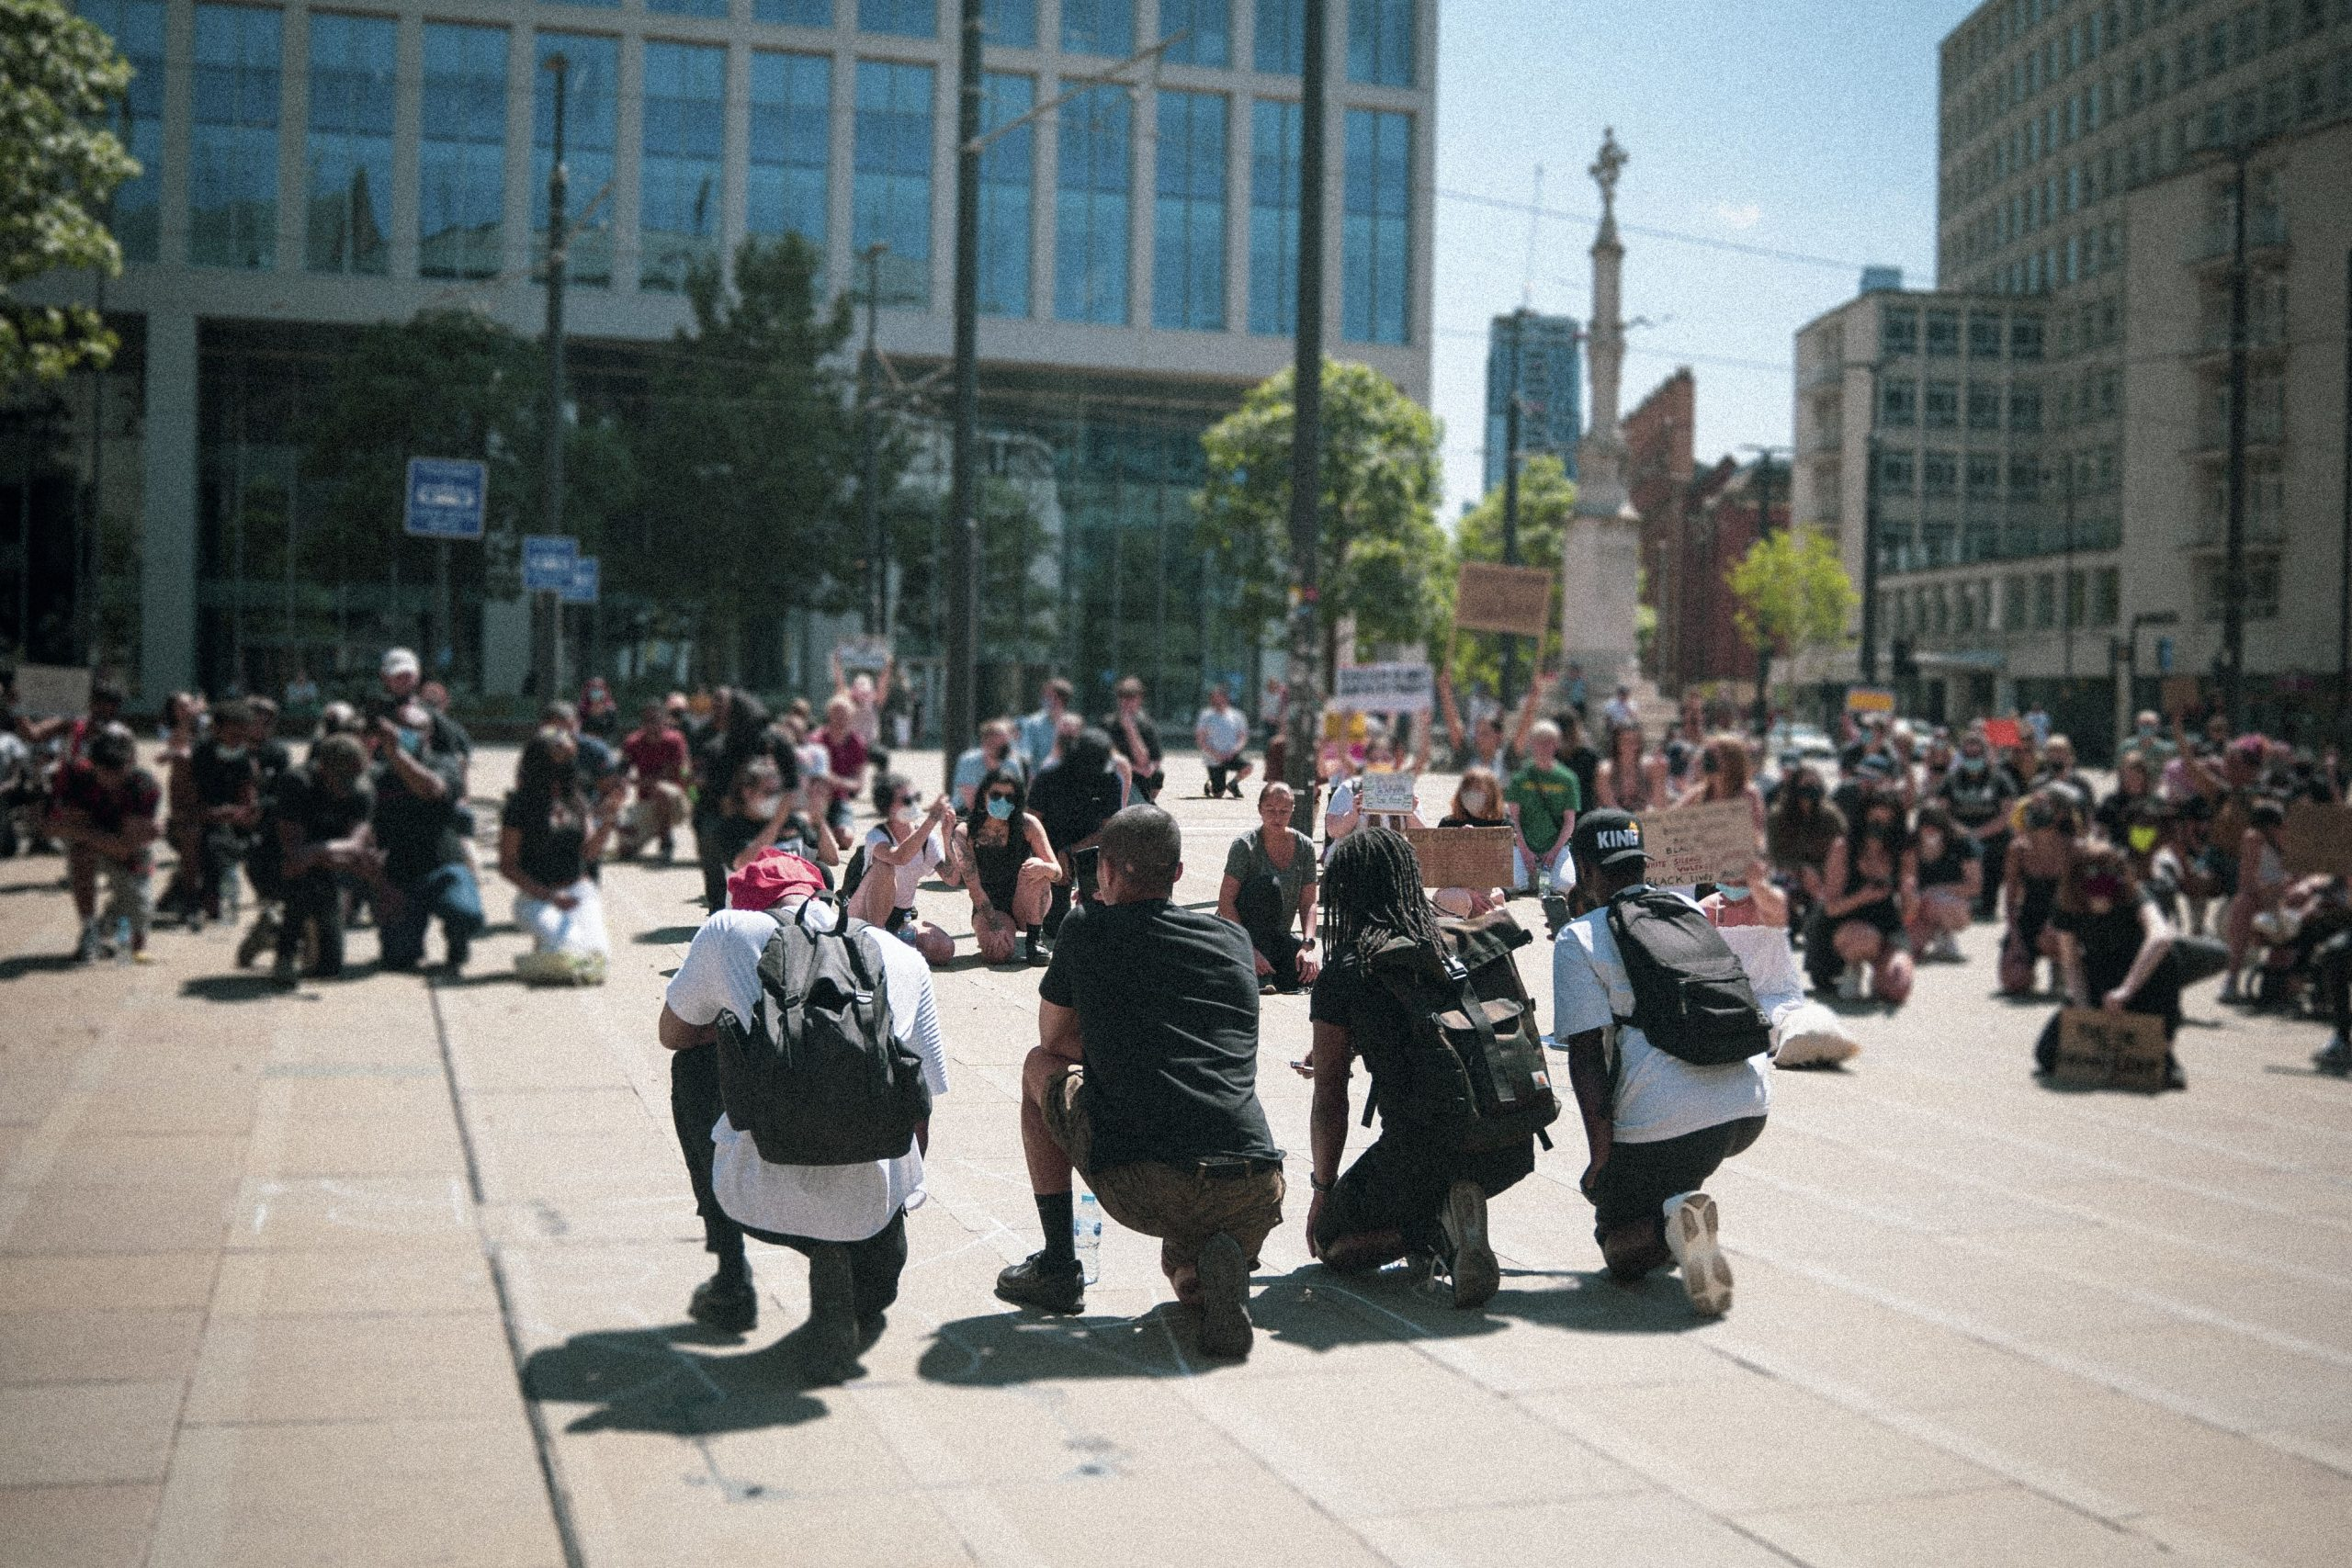 Black Lives Matter protest, Manchester, 31 May 2020, from People's History Museum's collection (C) Jake Hardy